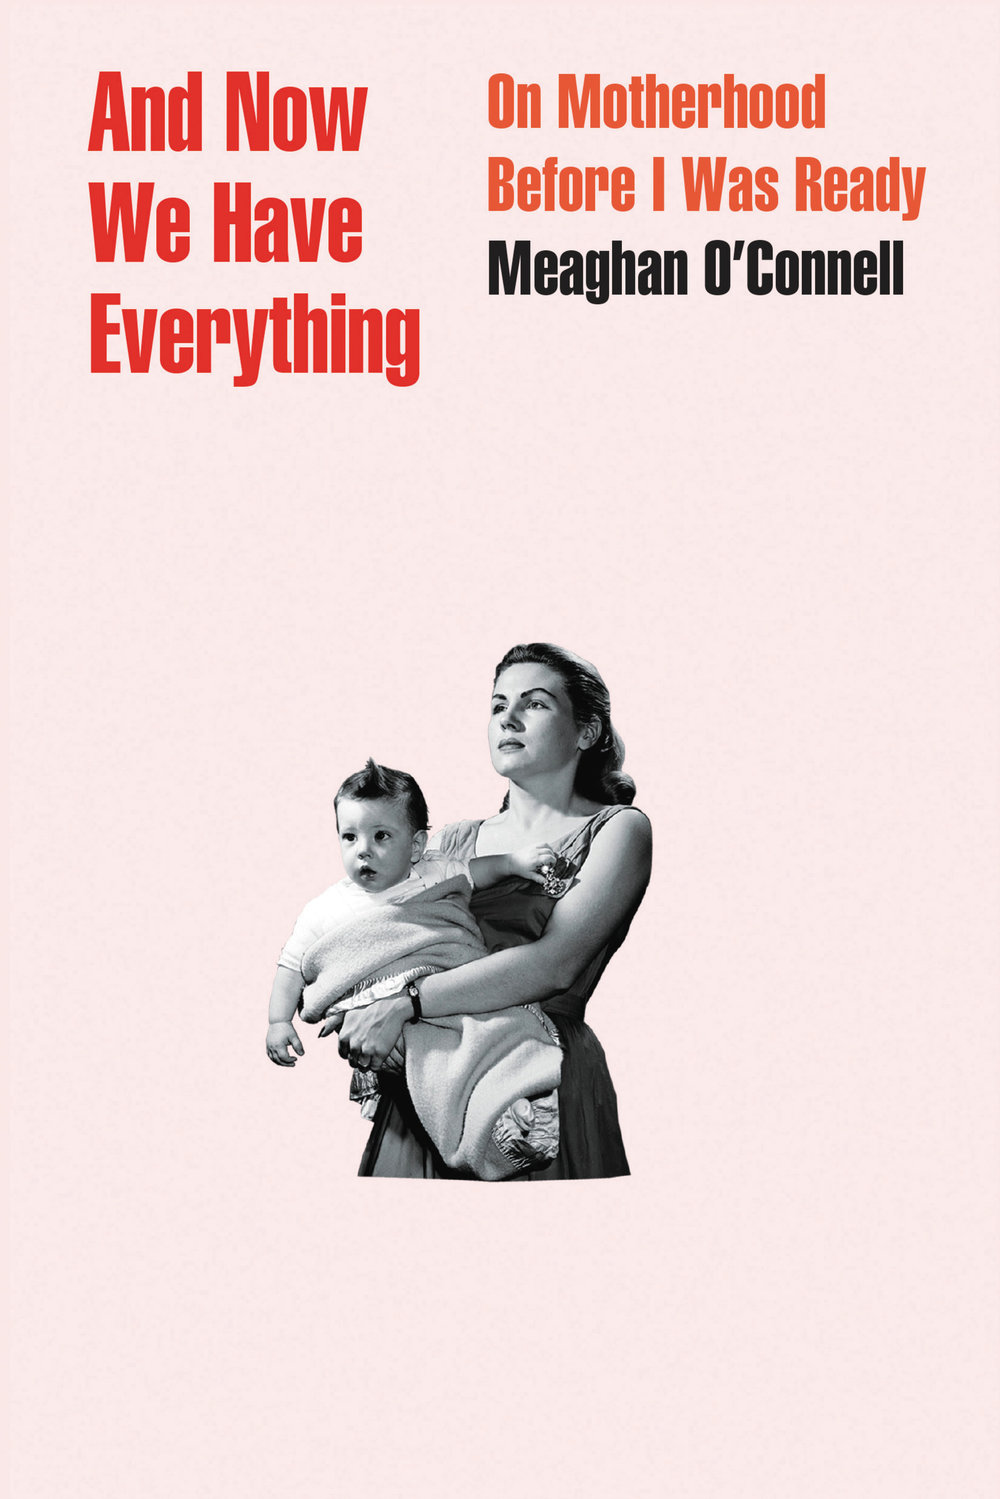 Inspiring Books By Women - And Now We Have Everything by Meaghan O'Connell